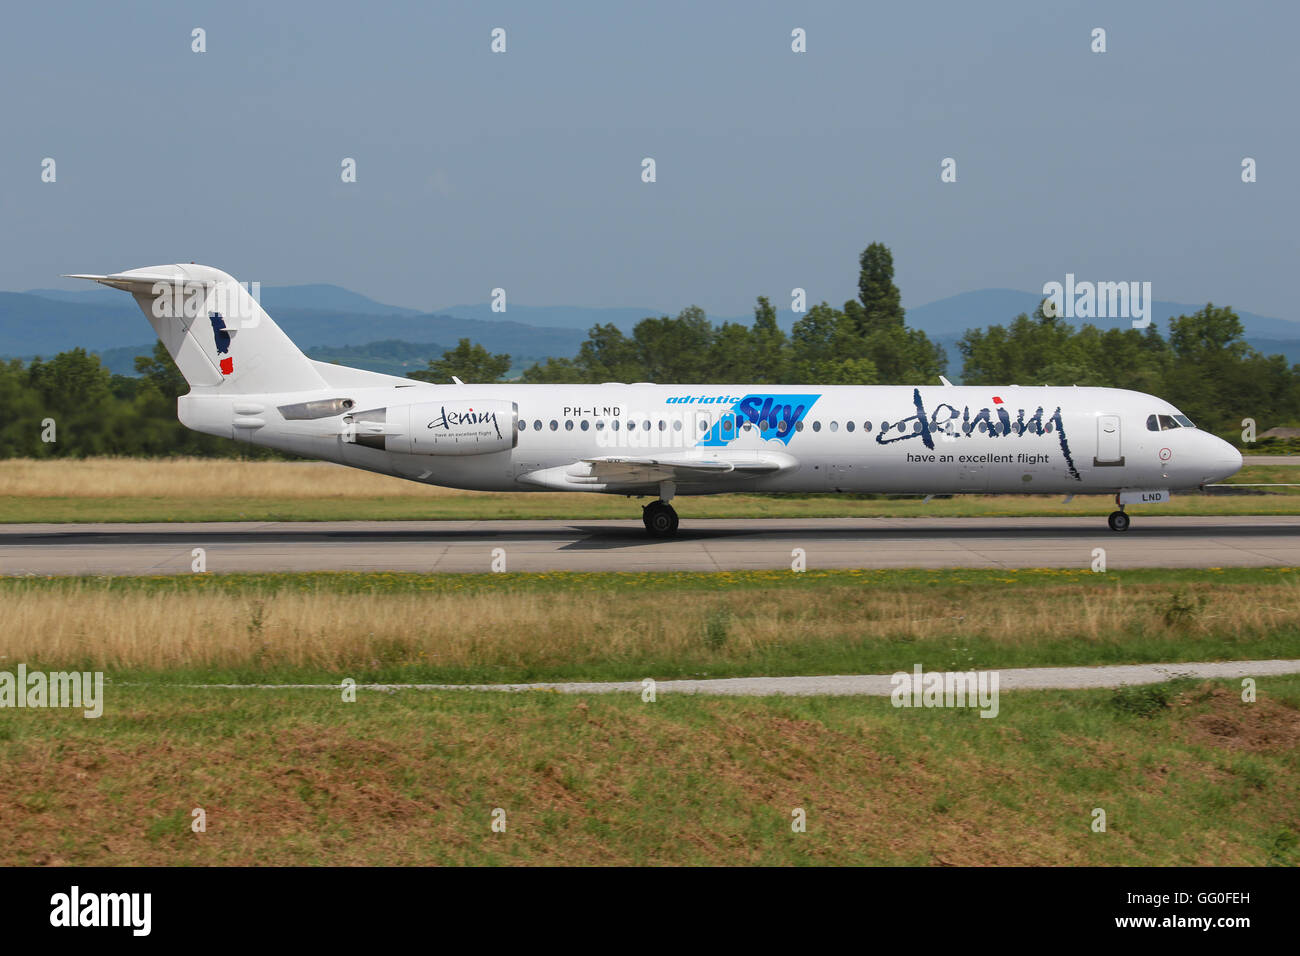 Genf/Switzerland August 5, 2015: Fokker from Demin Air  Genf Airport. - Stock Image